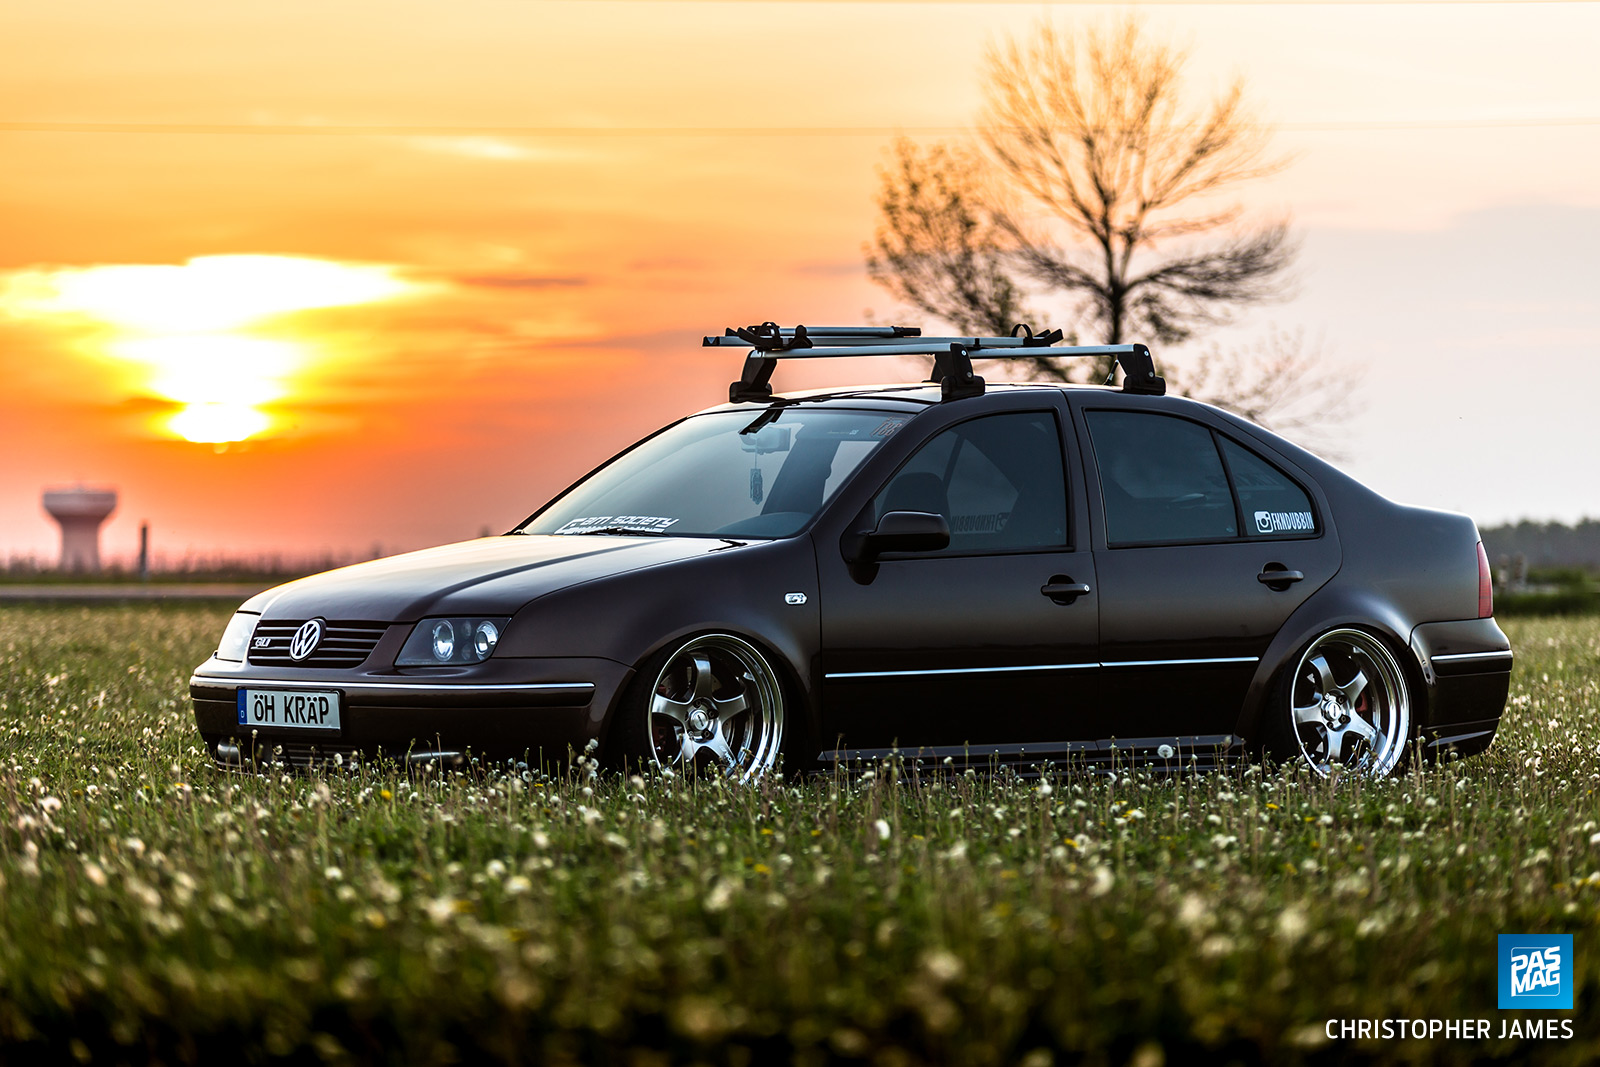 20 Kyle Pearson 2004 VW Jetta PASMAG TBGLIVE